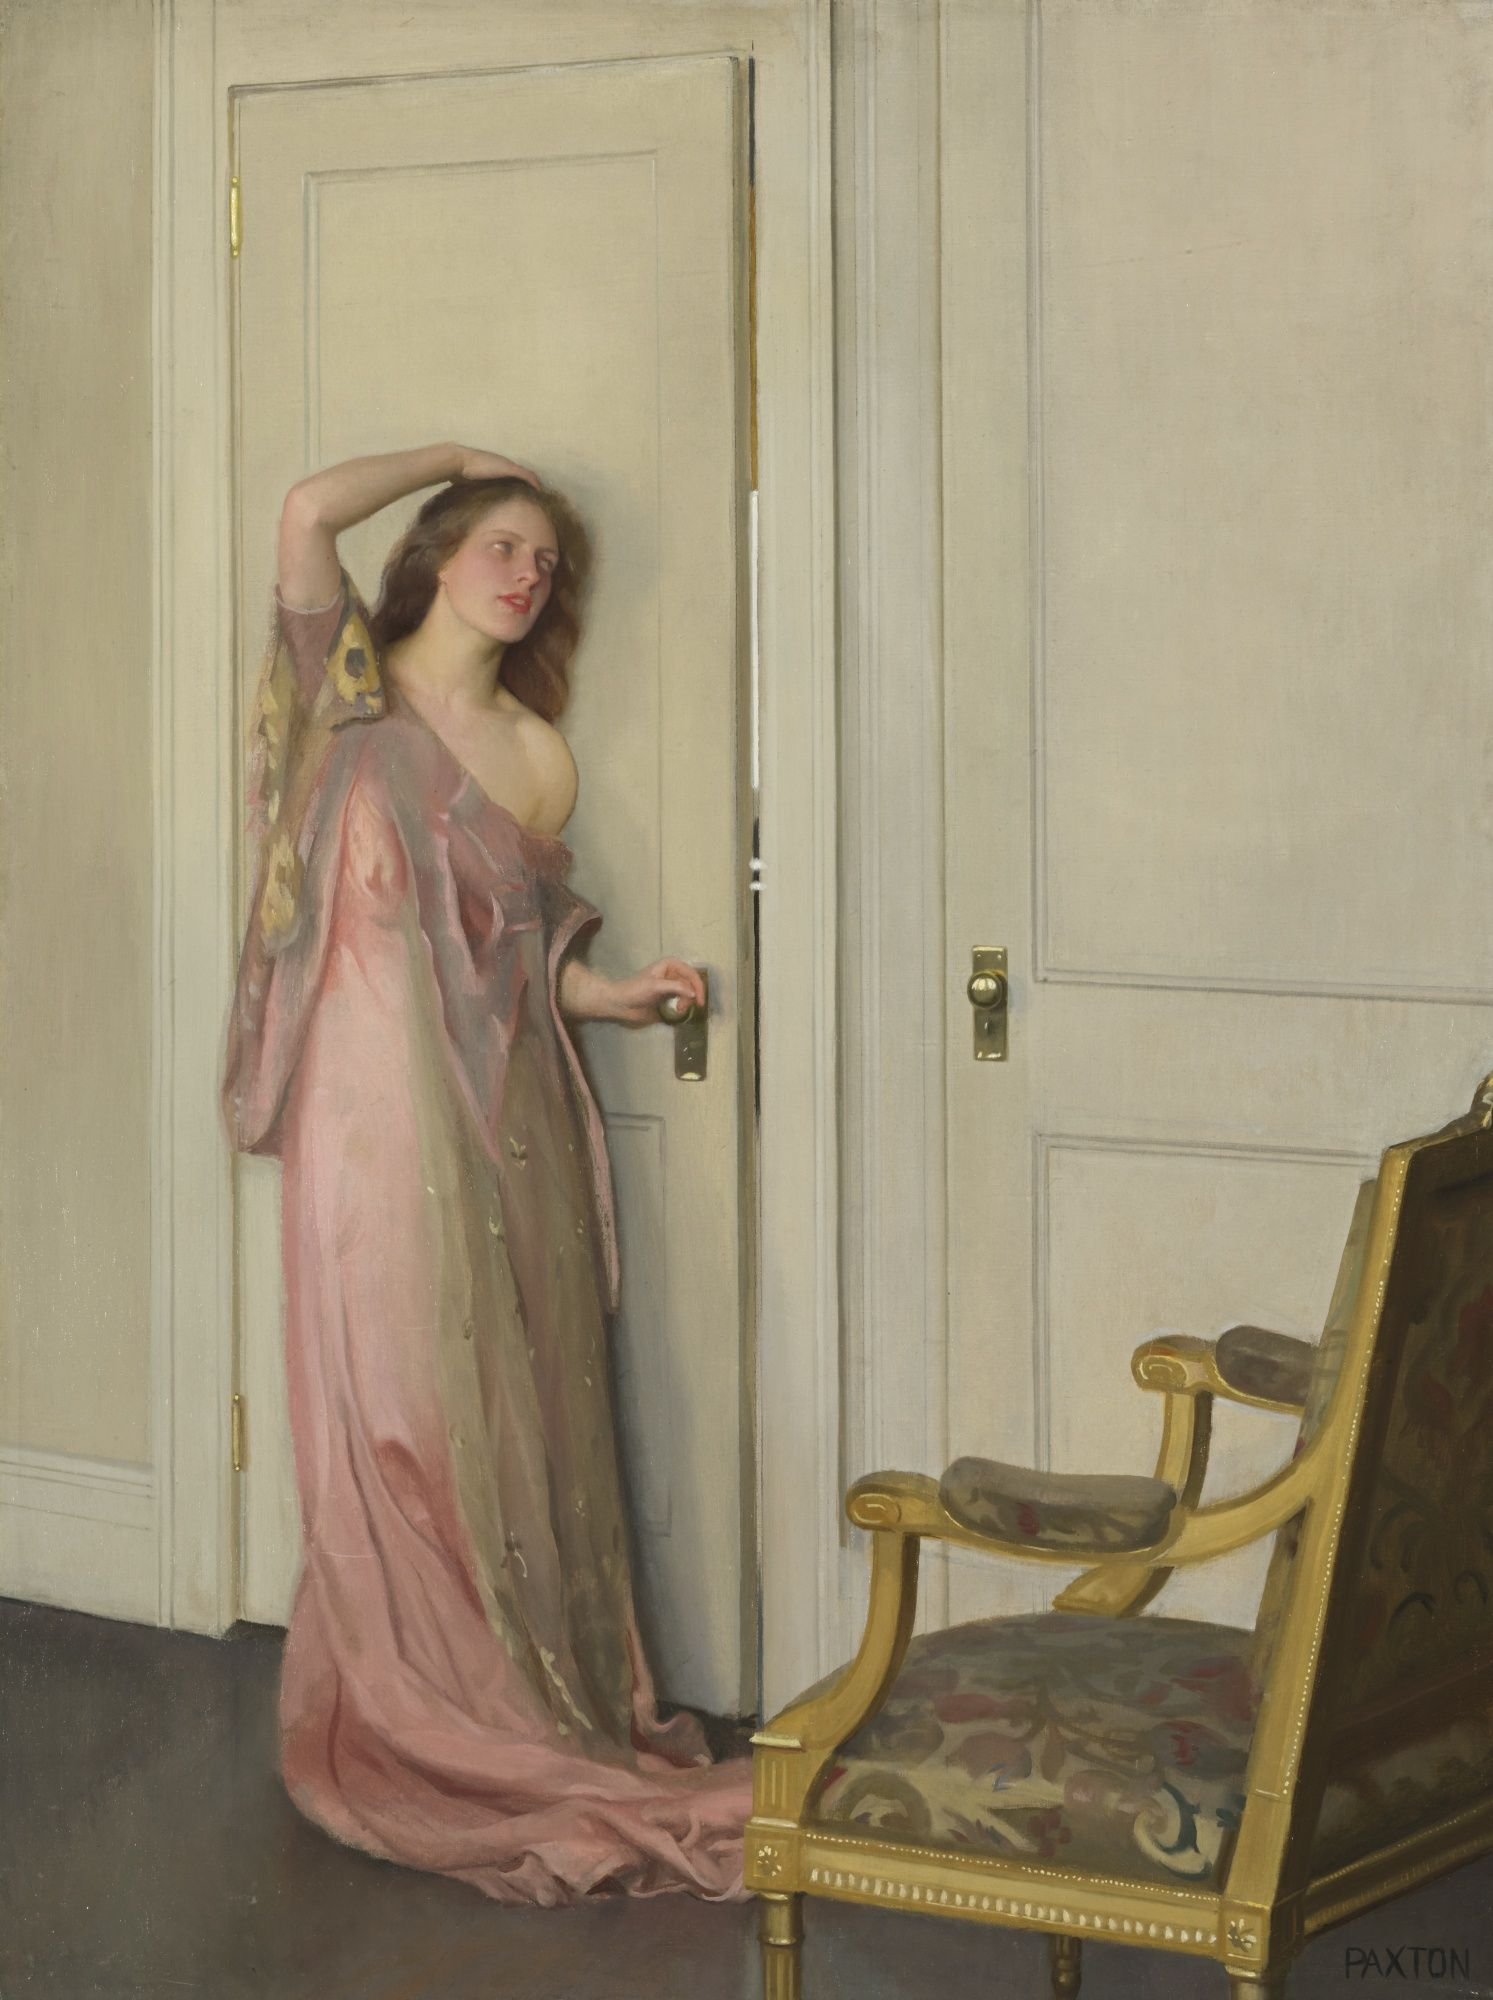 William McGregor Paxton 1869 - 1941 THE OTHER DOOR Signed Paxton (lower right) Oil on canvas 40 by 30 inches by cm) Painted in & The Other Door\